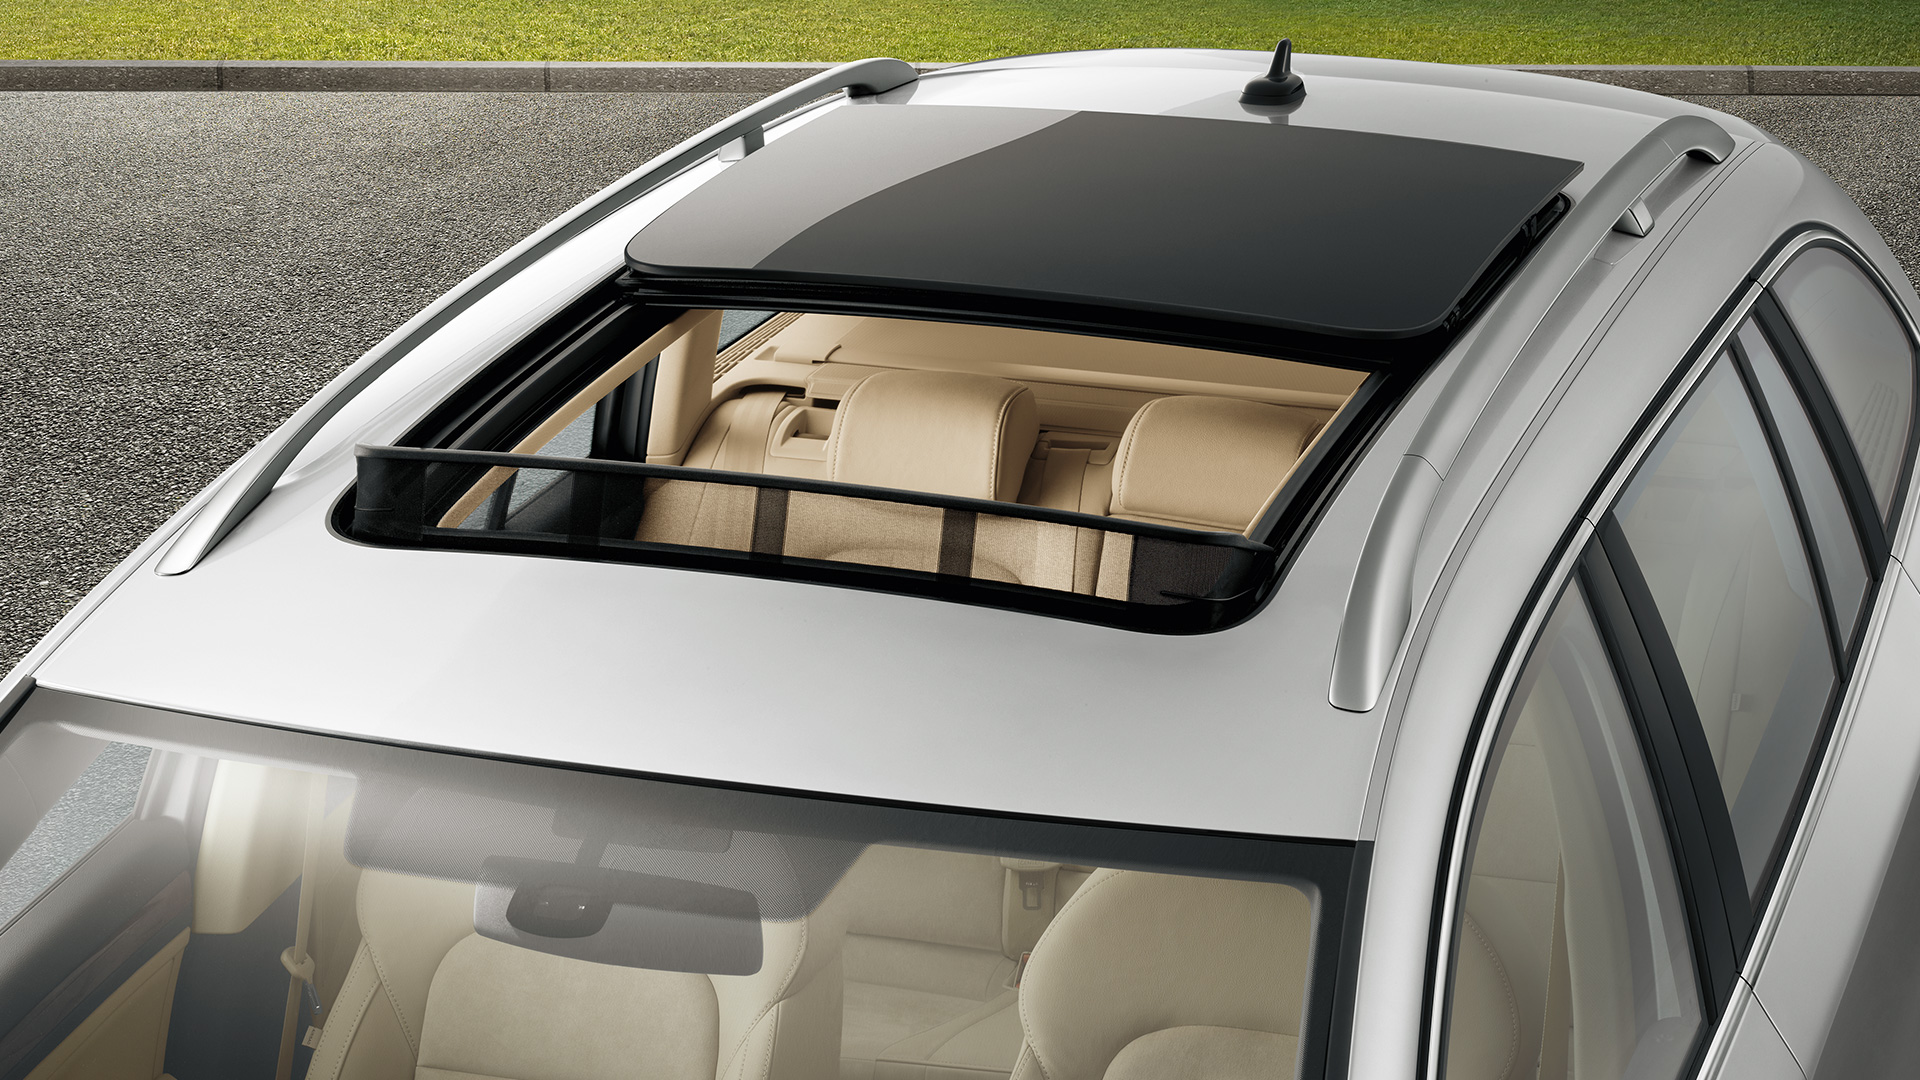 captivating sunroof cars looking for attention carbay. Black Bedroom Furniture Sets. Home Design Ideas